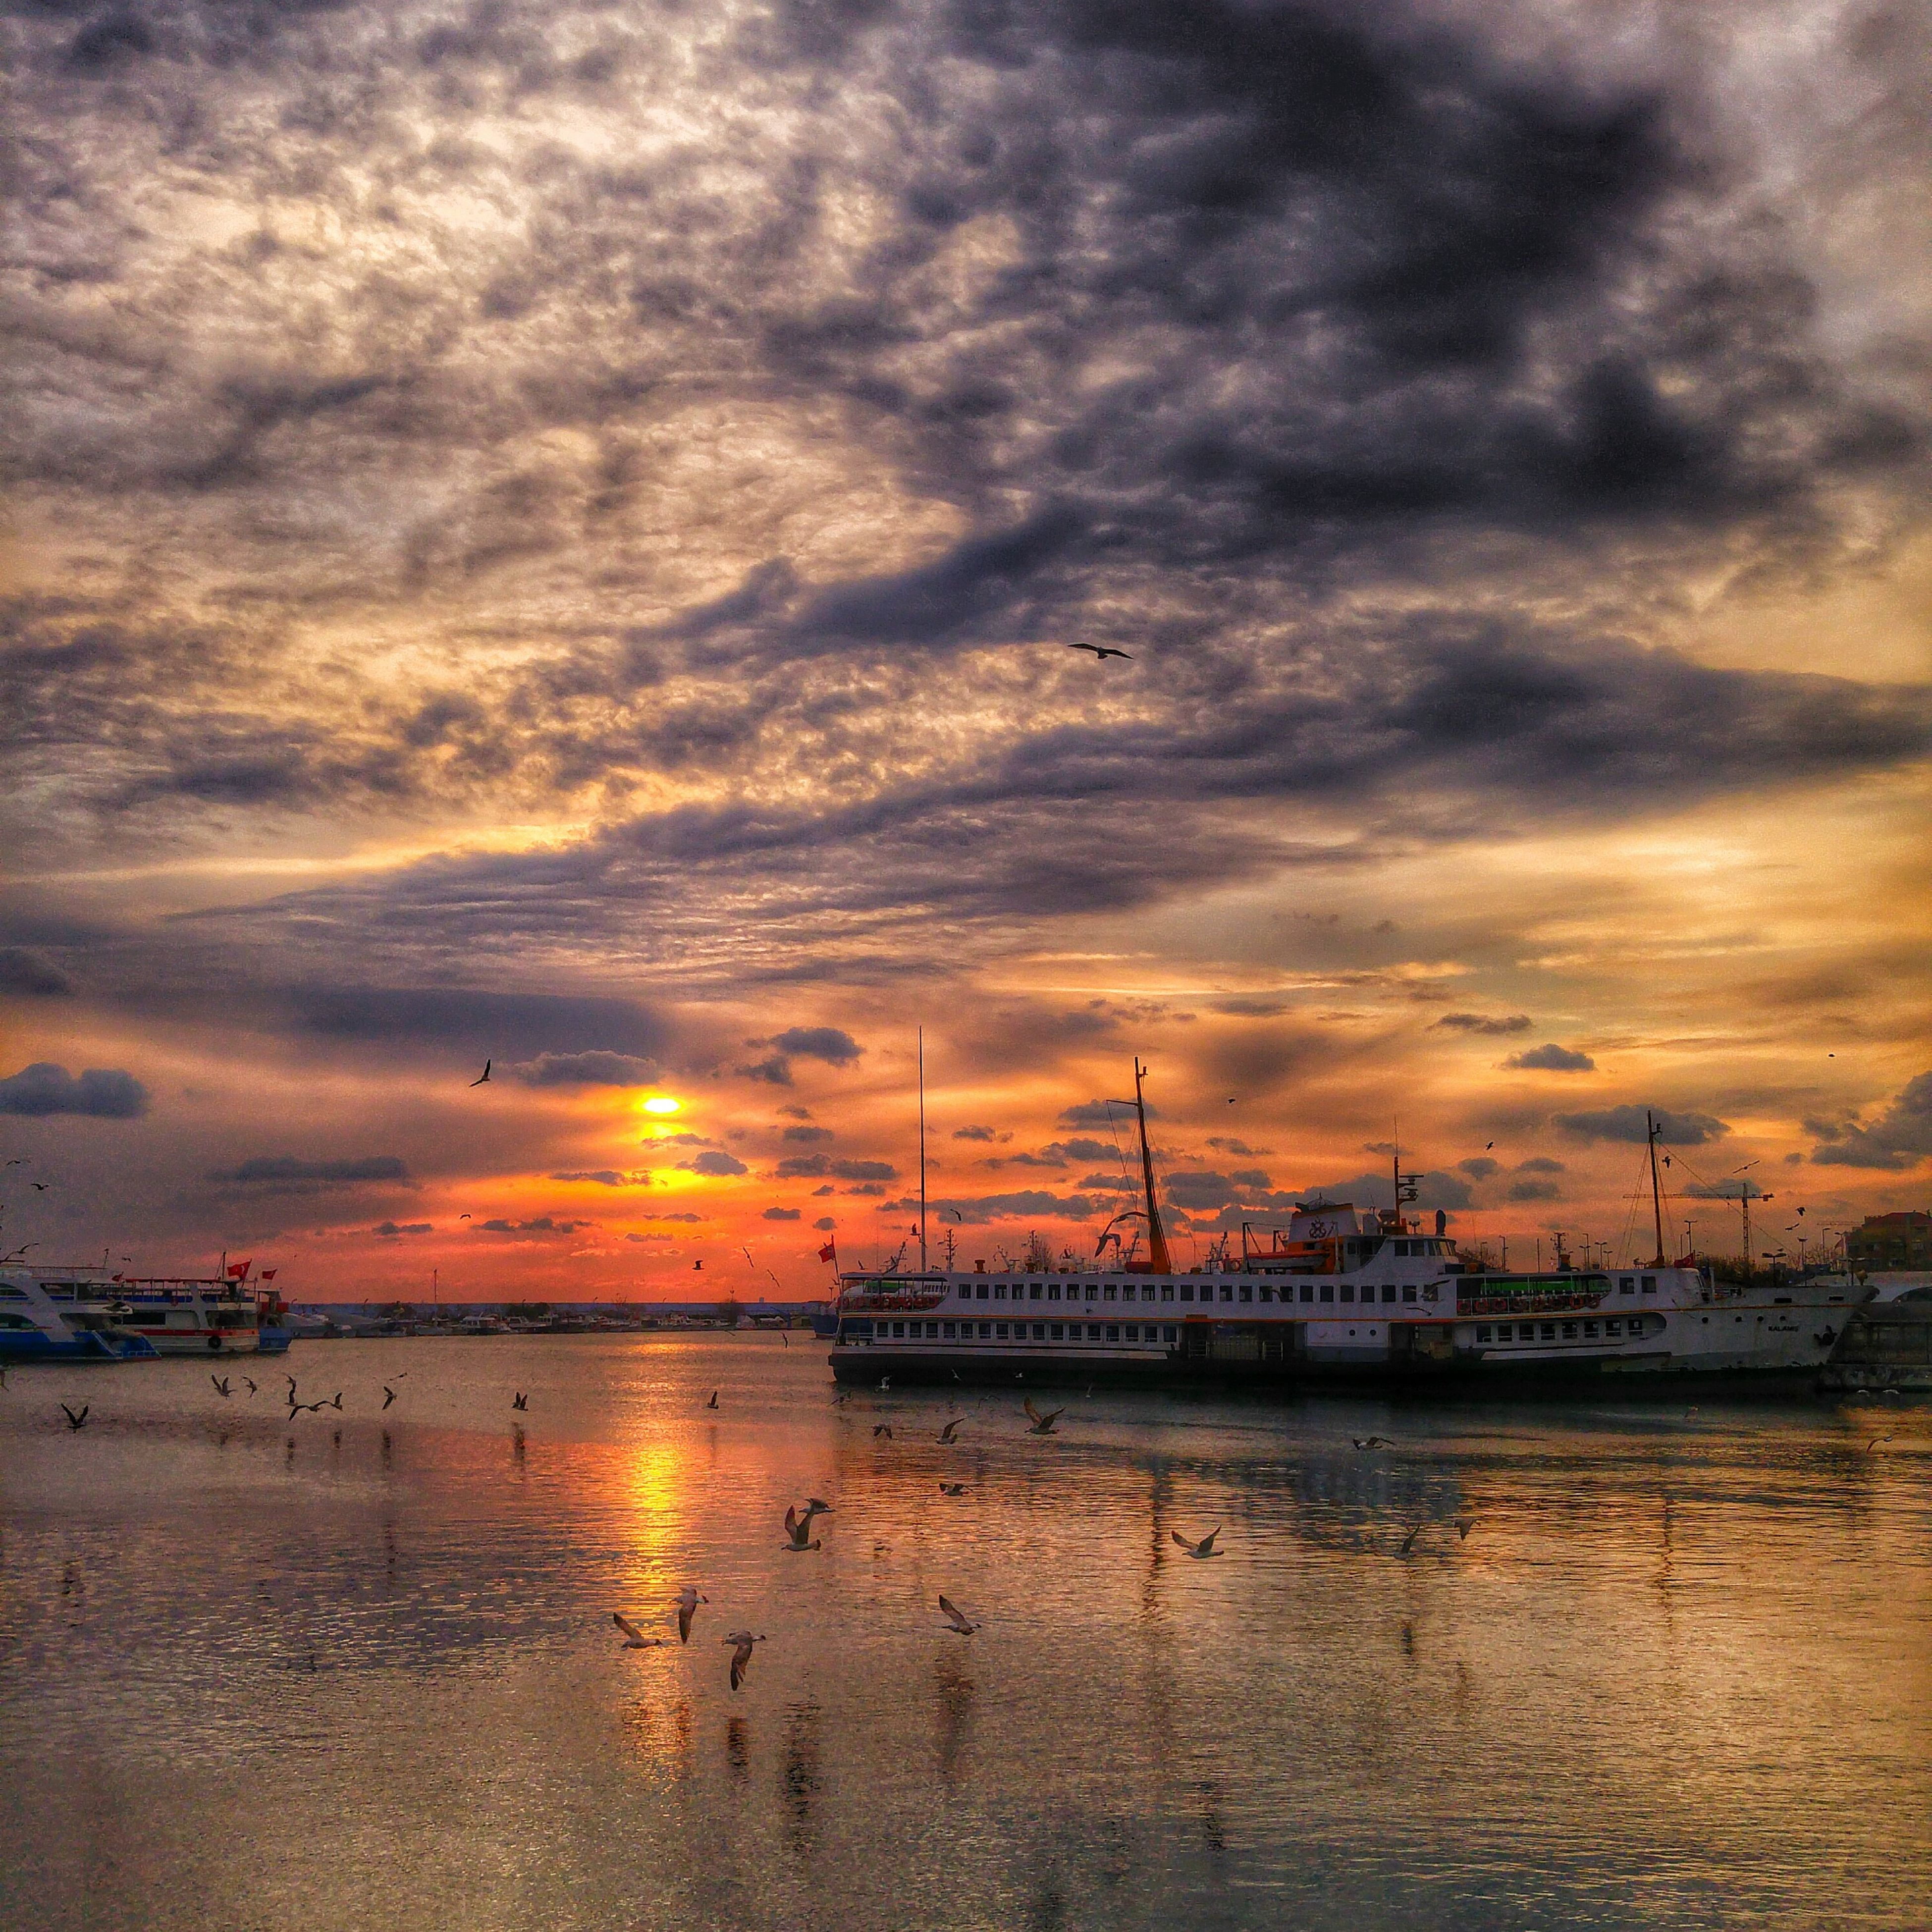 sunset, water, sky, nautical vessel, sea, cloud - sky, transportation, mode of transport, boat, orange color, scenics, cloudy, beauty in nature, moored, waterfront, dramatic sky, tranquility, silhouette, harbor, tranquil scene